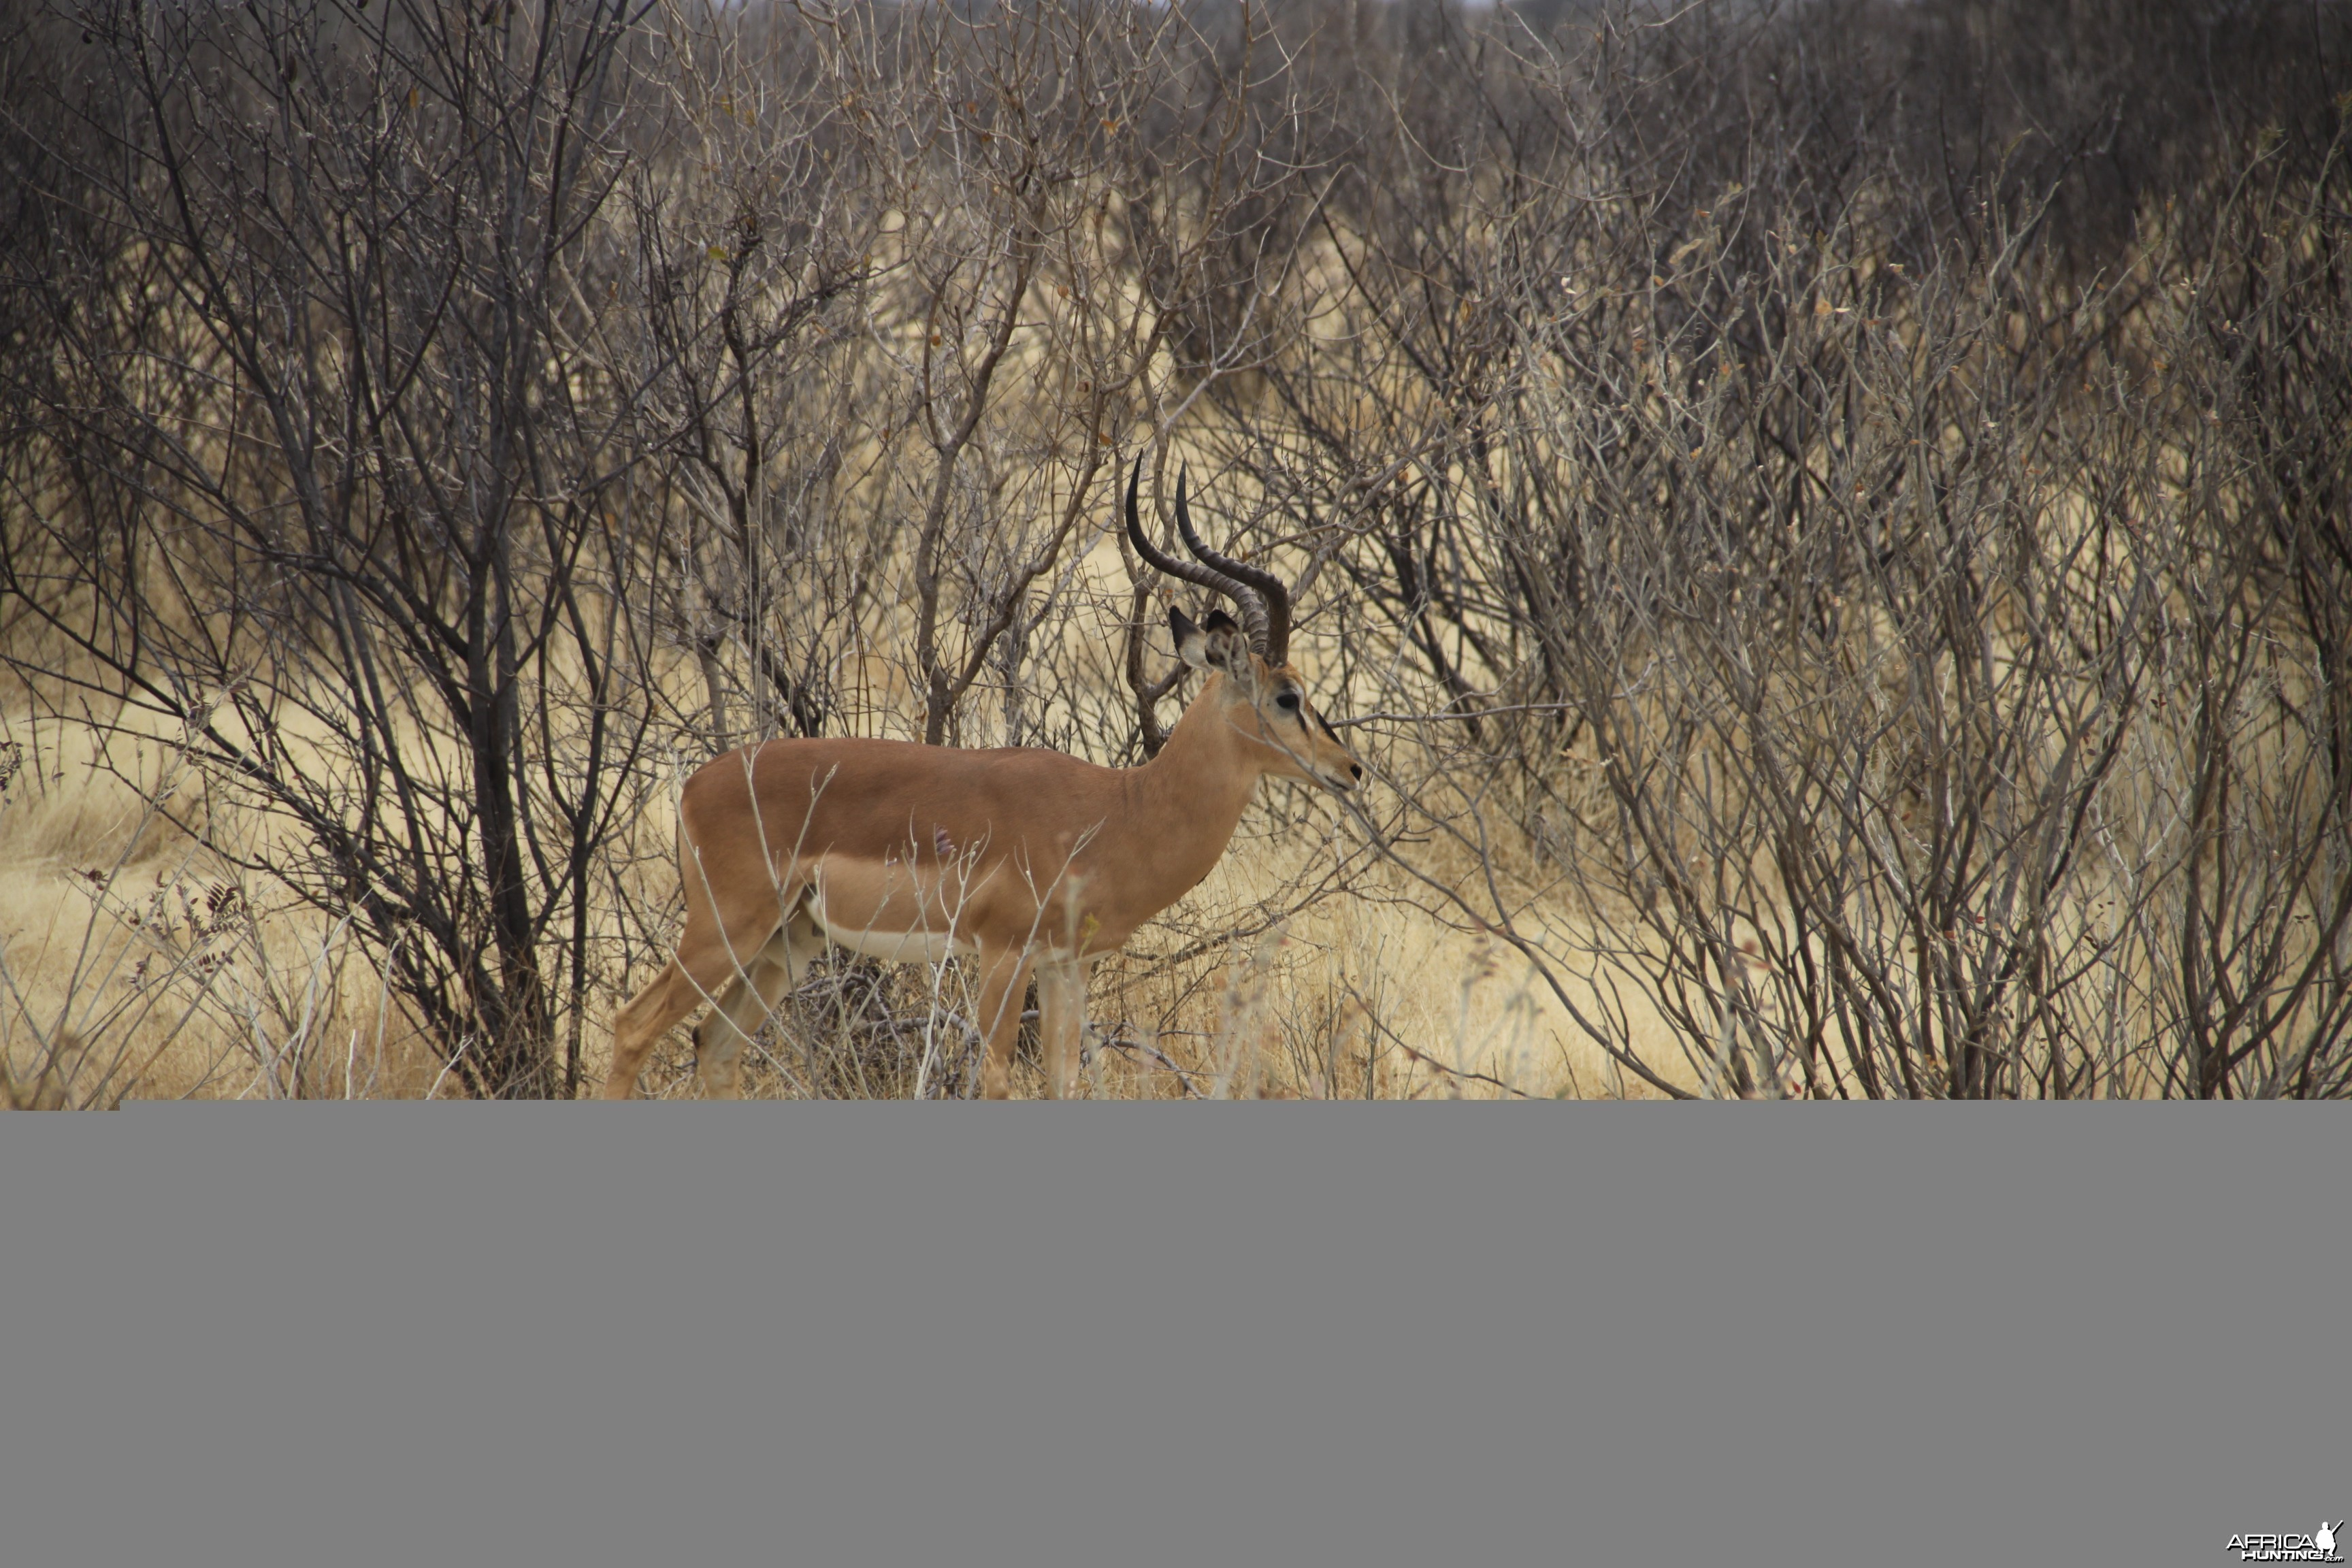 Etosha Black-Faced Impala